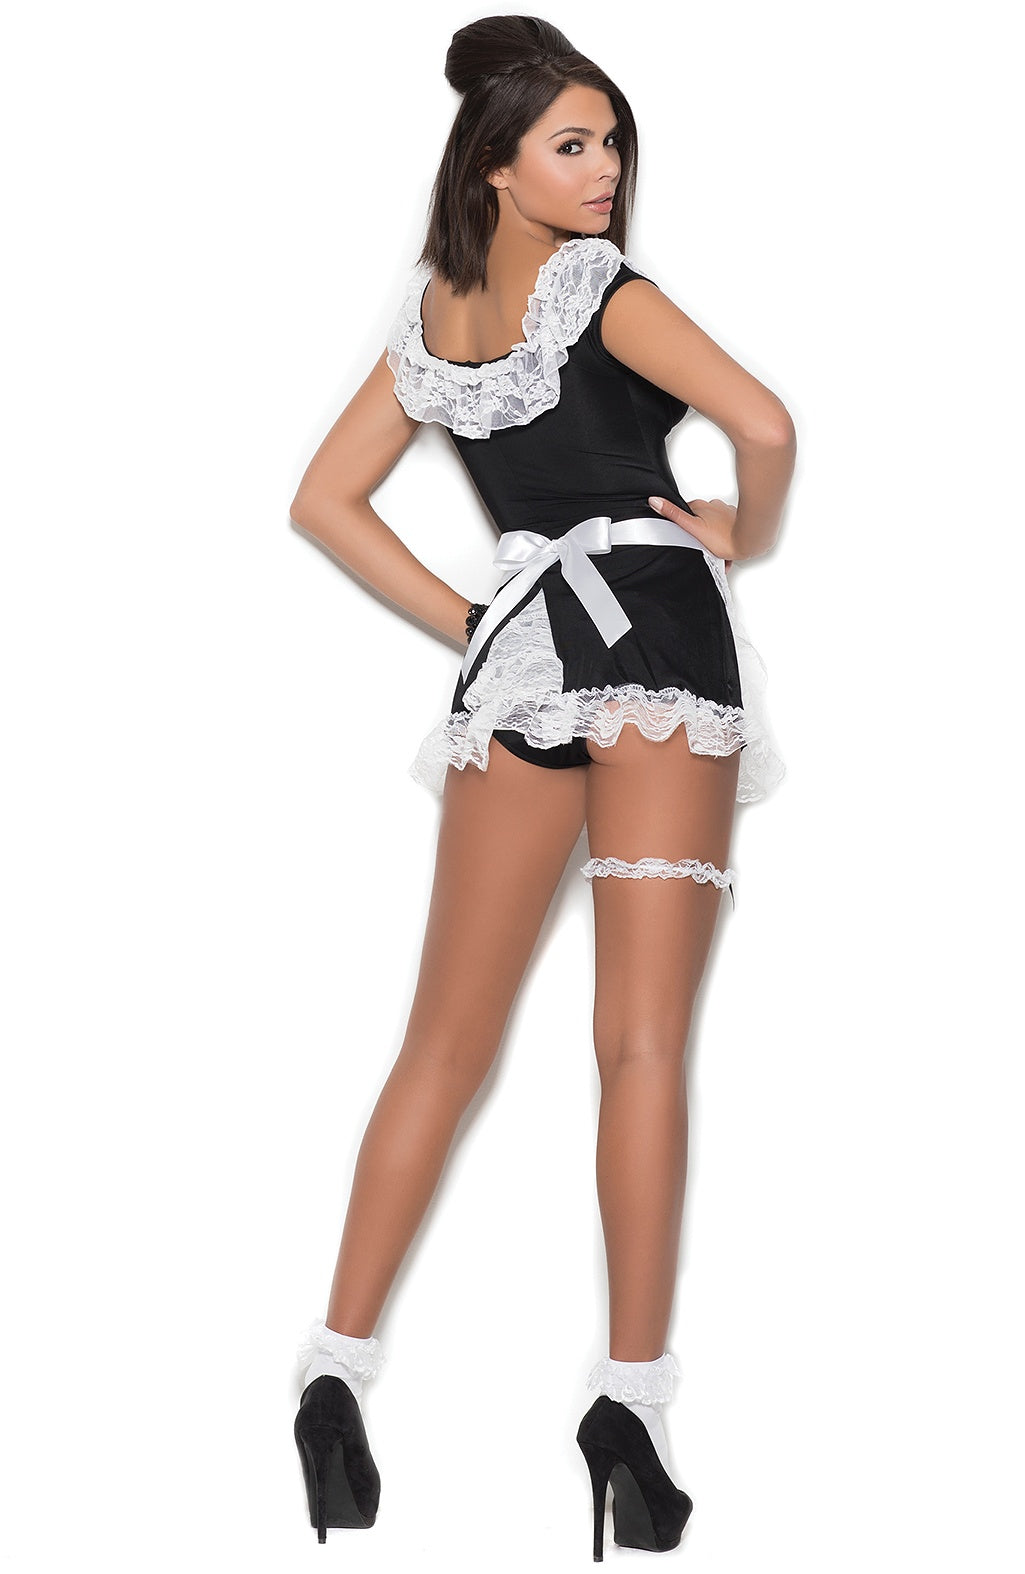 French Maid womens costume - Sexylingerieland